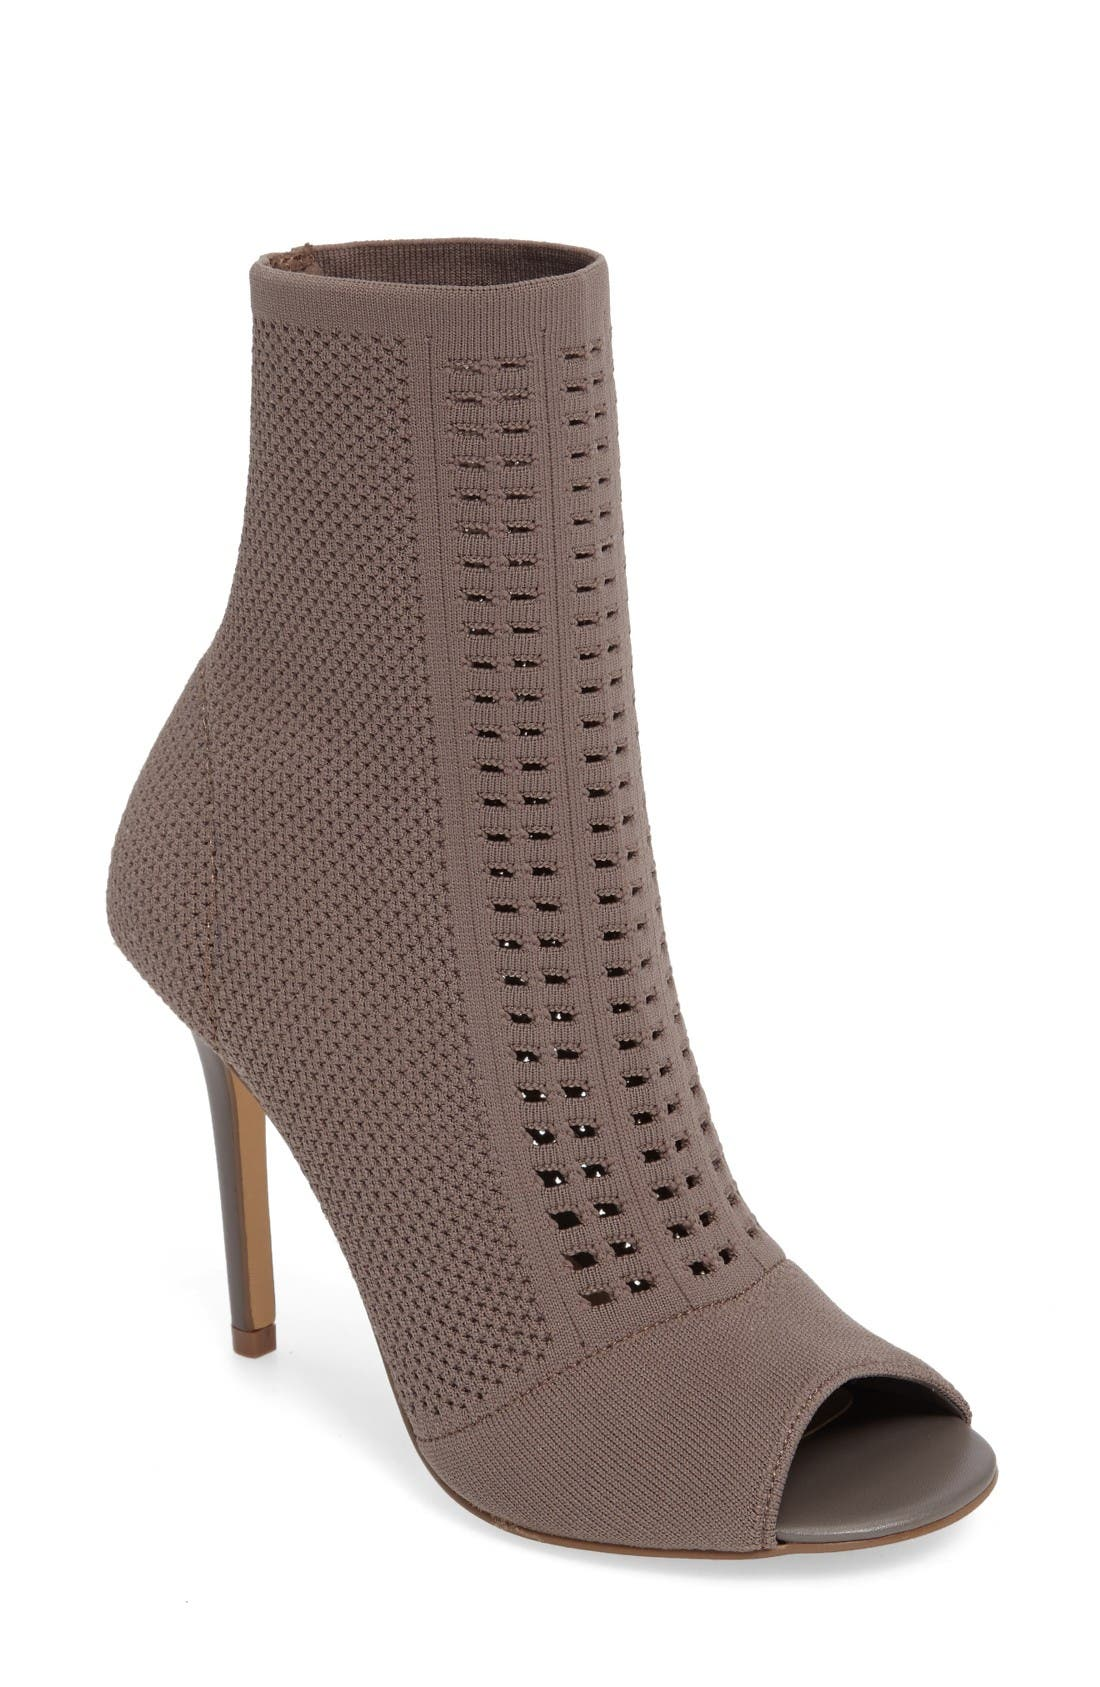 Charles by Charles David Rebellious Knit Peep Toe Bootie (Women)